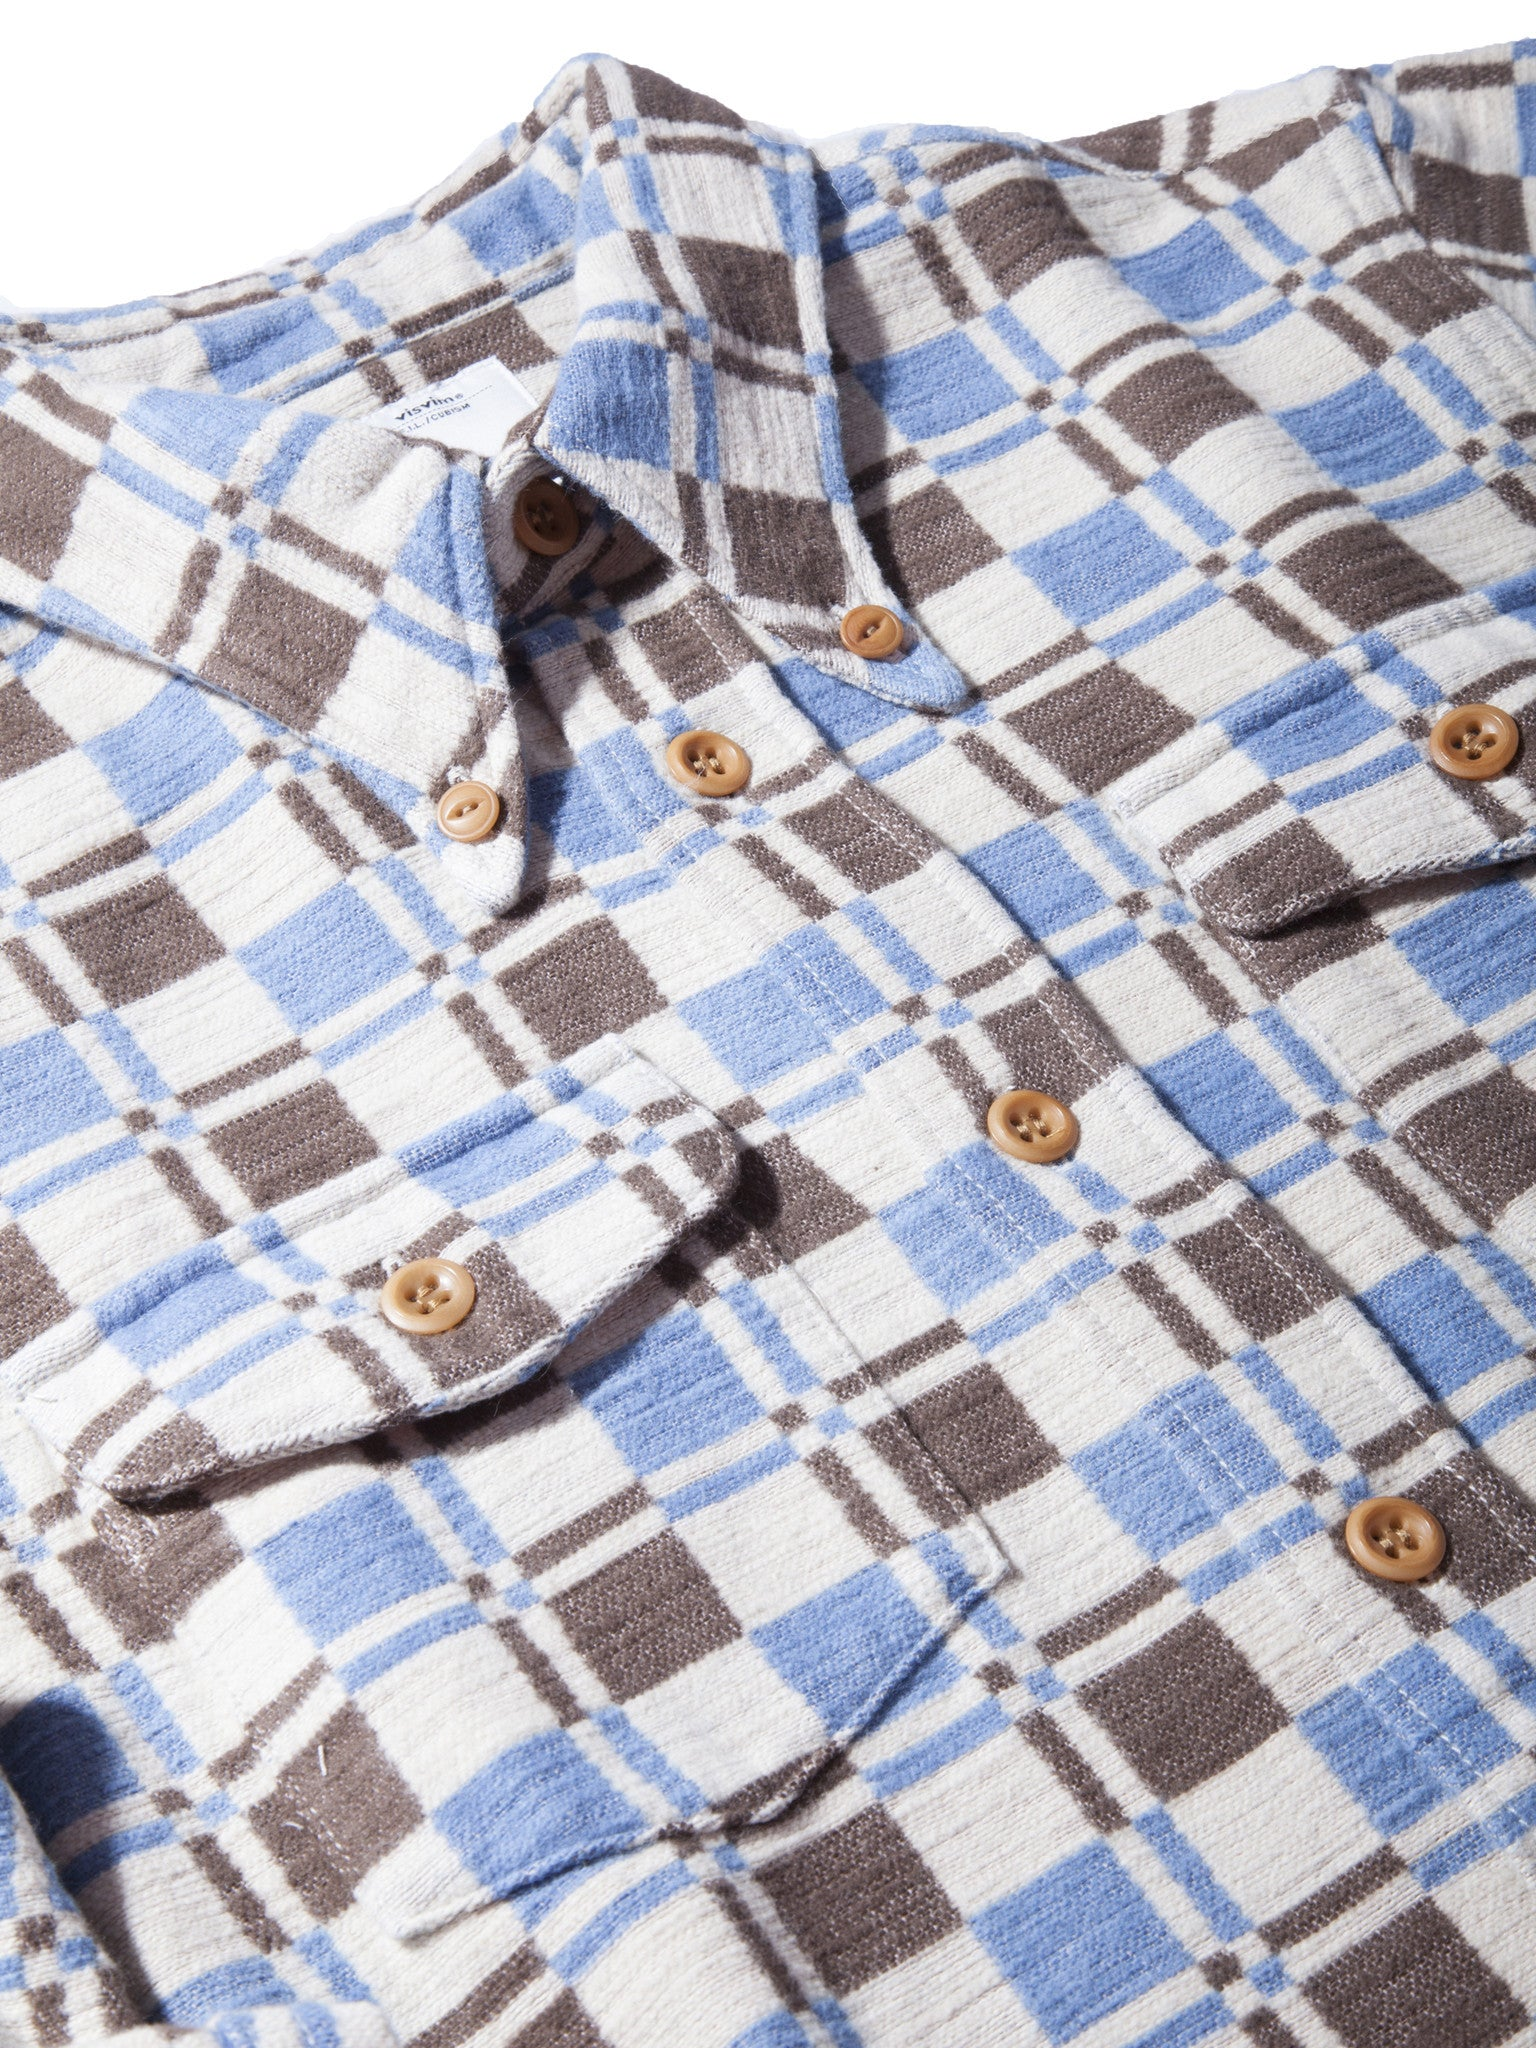 Indigo Wally Shirt (Indigo DB CK) 8